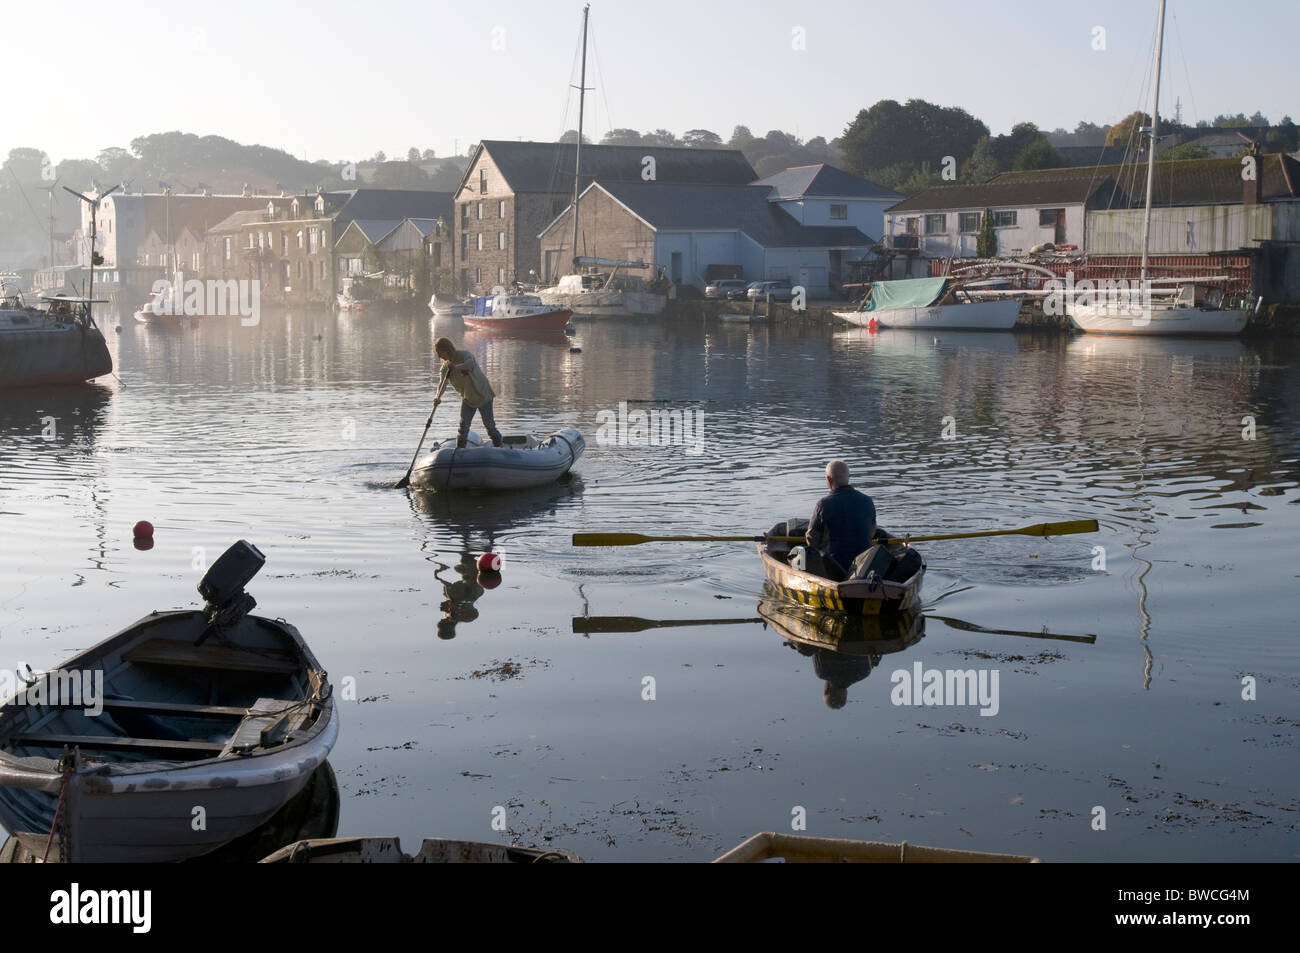 A woman paddles her dinghy on the Penryn river, Cornwall in the early morning. - Stock Image